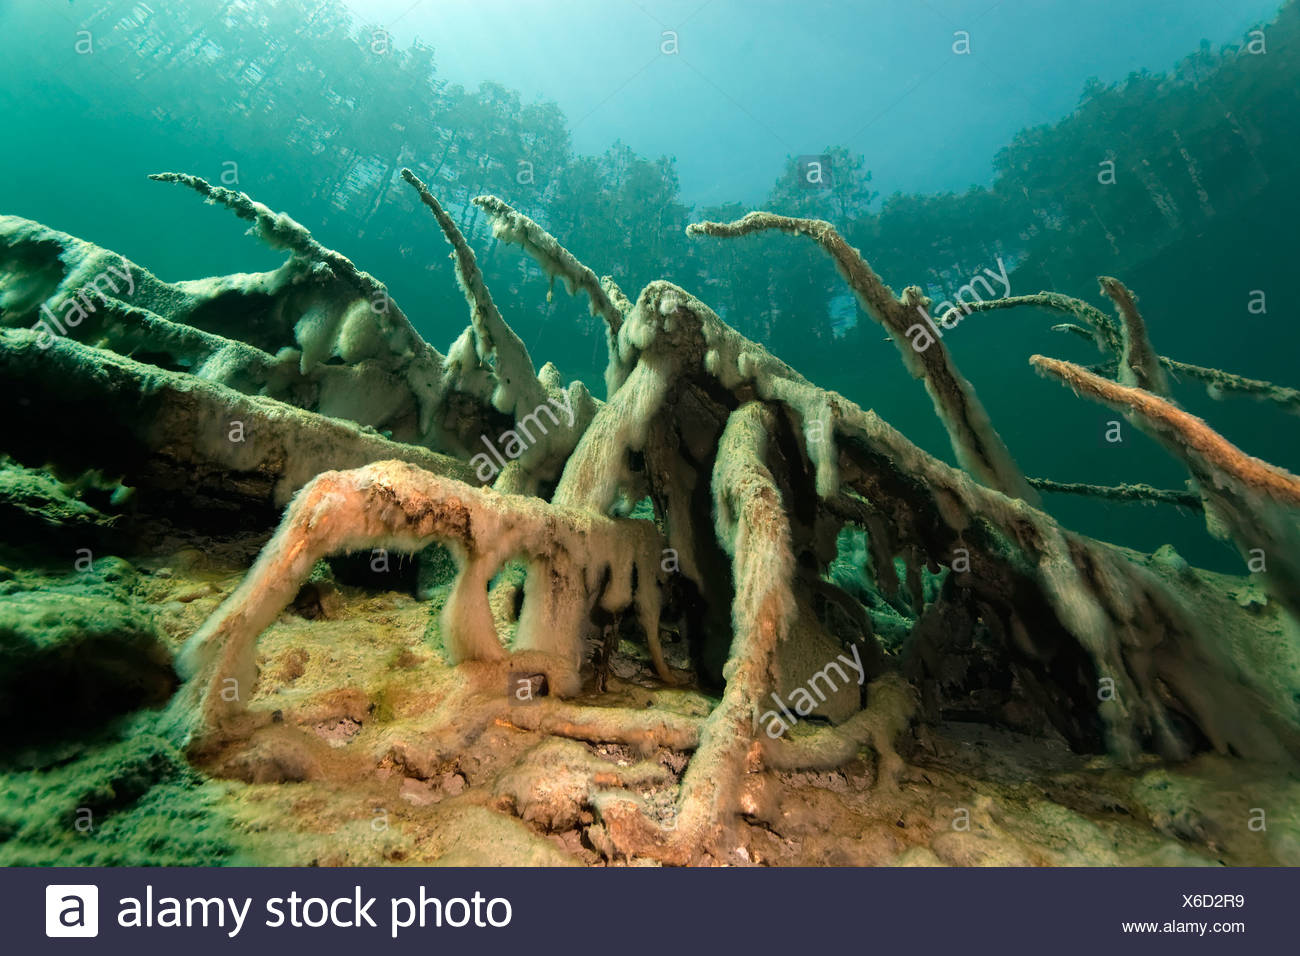 Roots with Slime Algae, total internal reflection, trees, underwater landscape, Fernsteinsee Lake, Tyrol, Austria - Stock Image